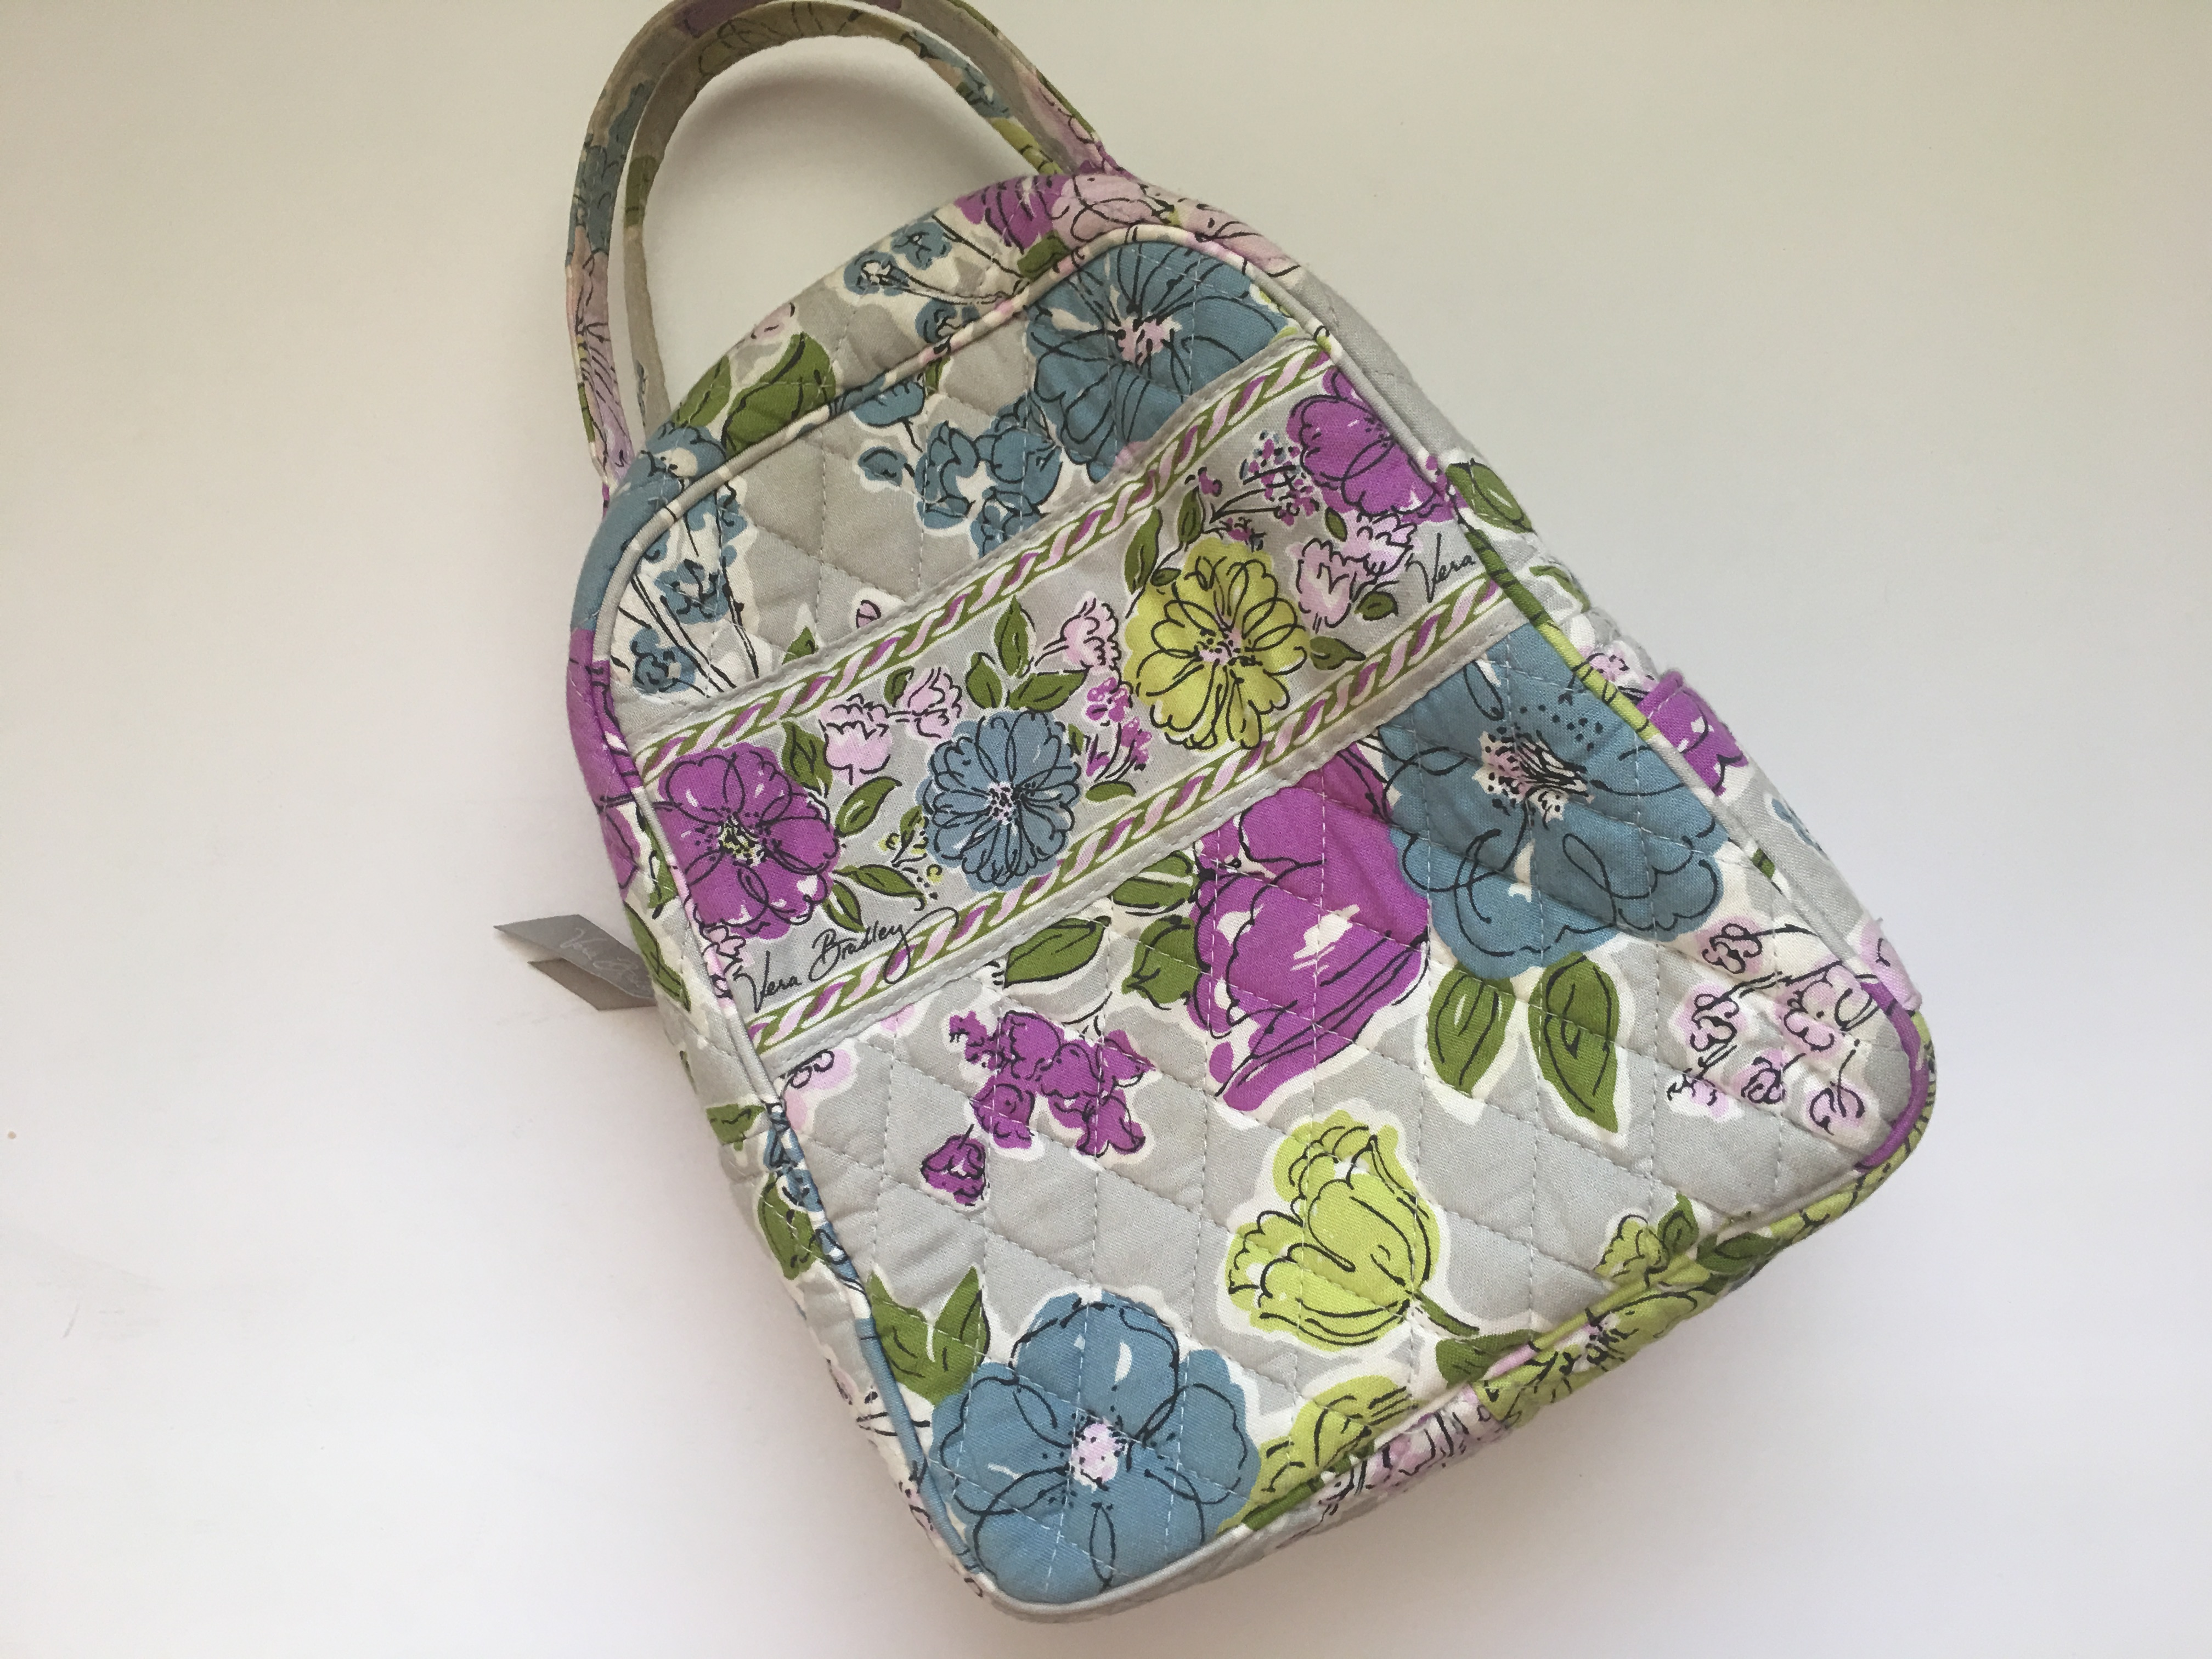 The Vera Bradley Lunch Box